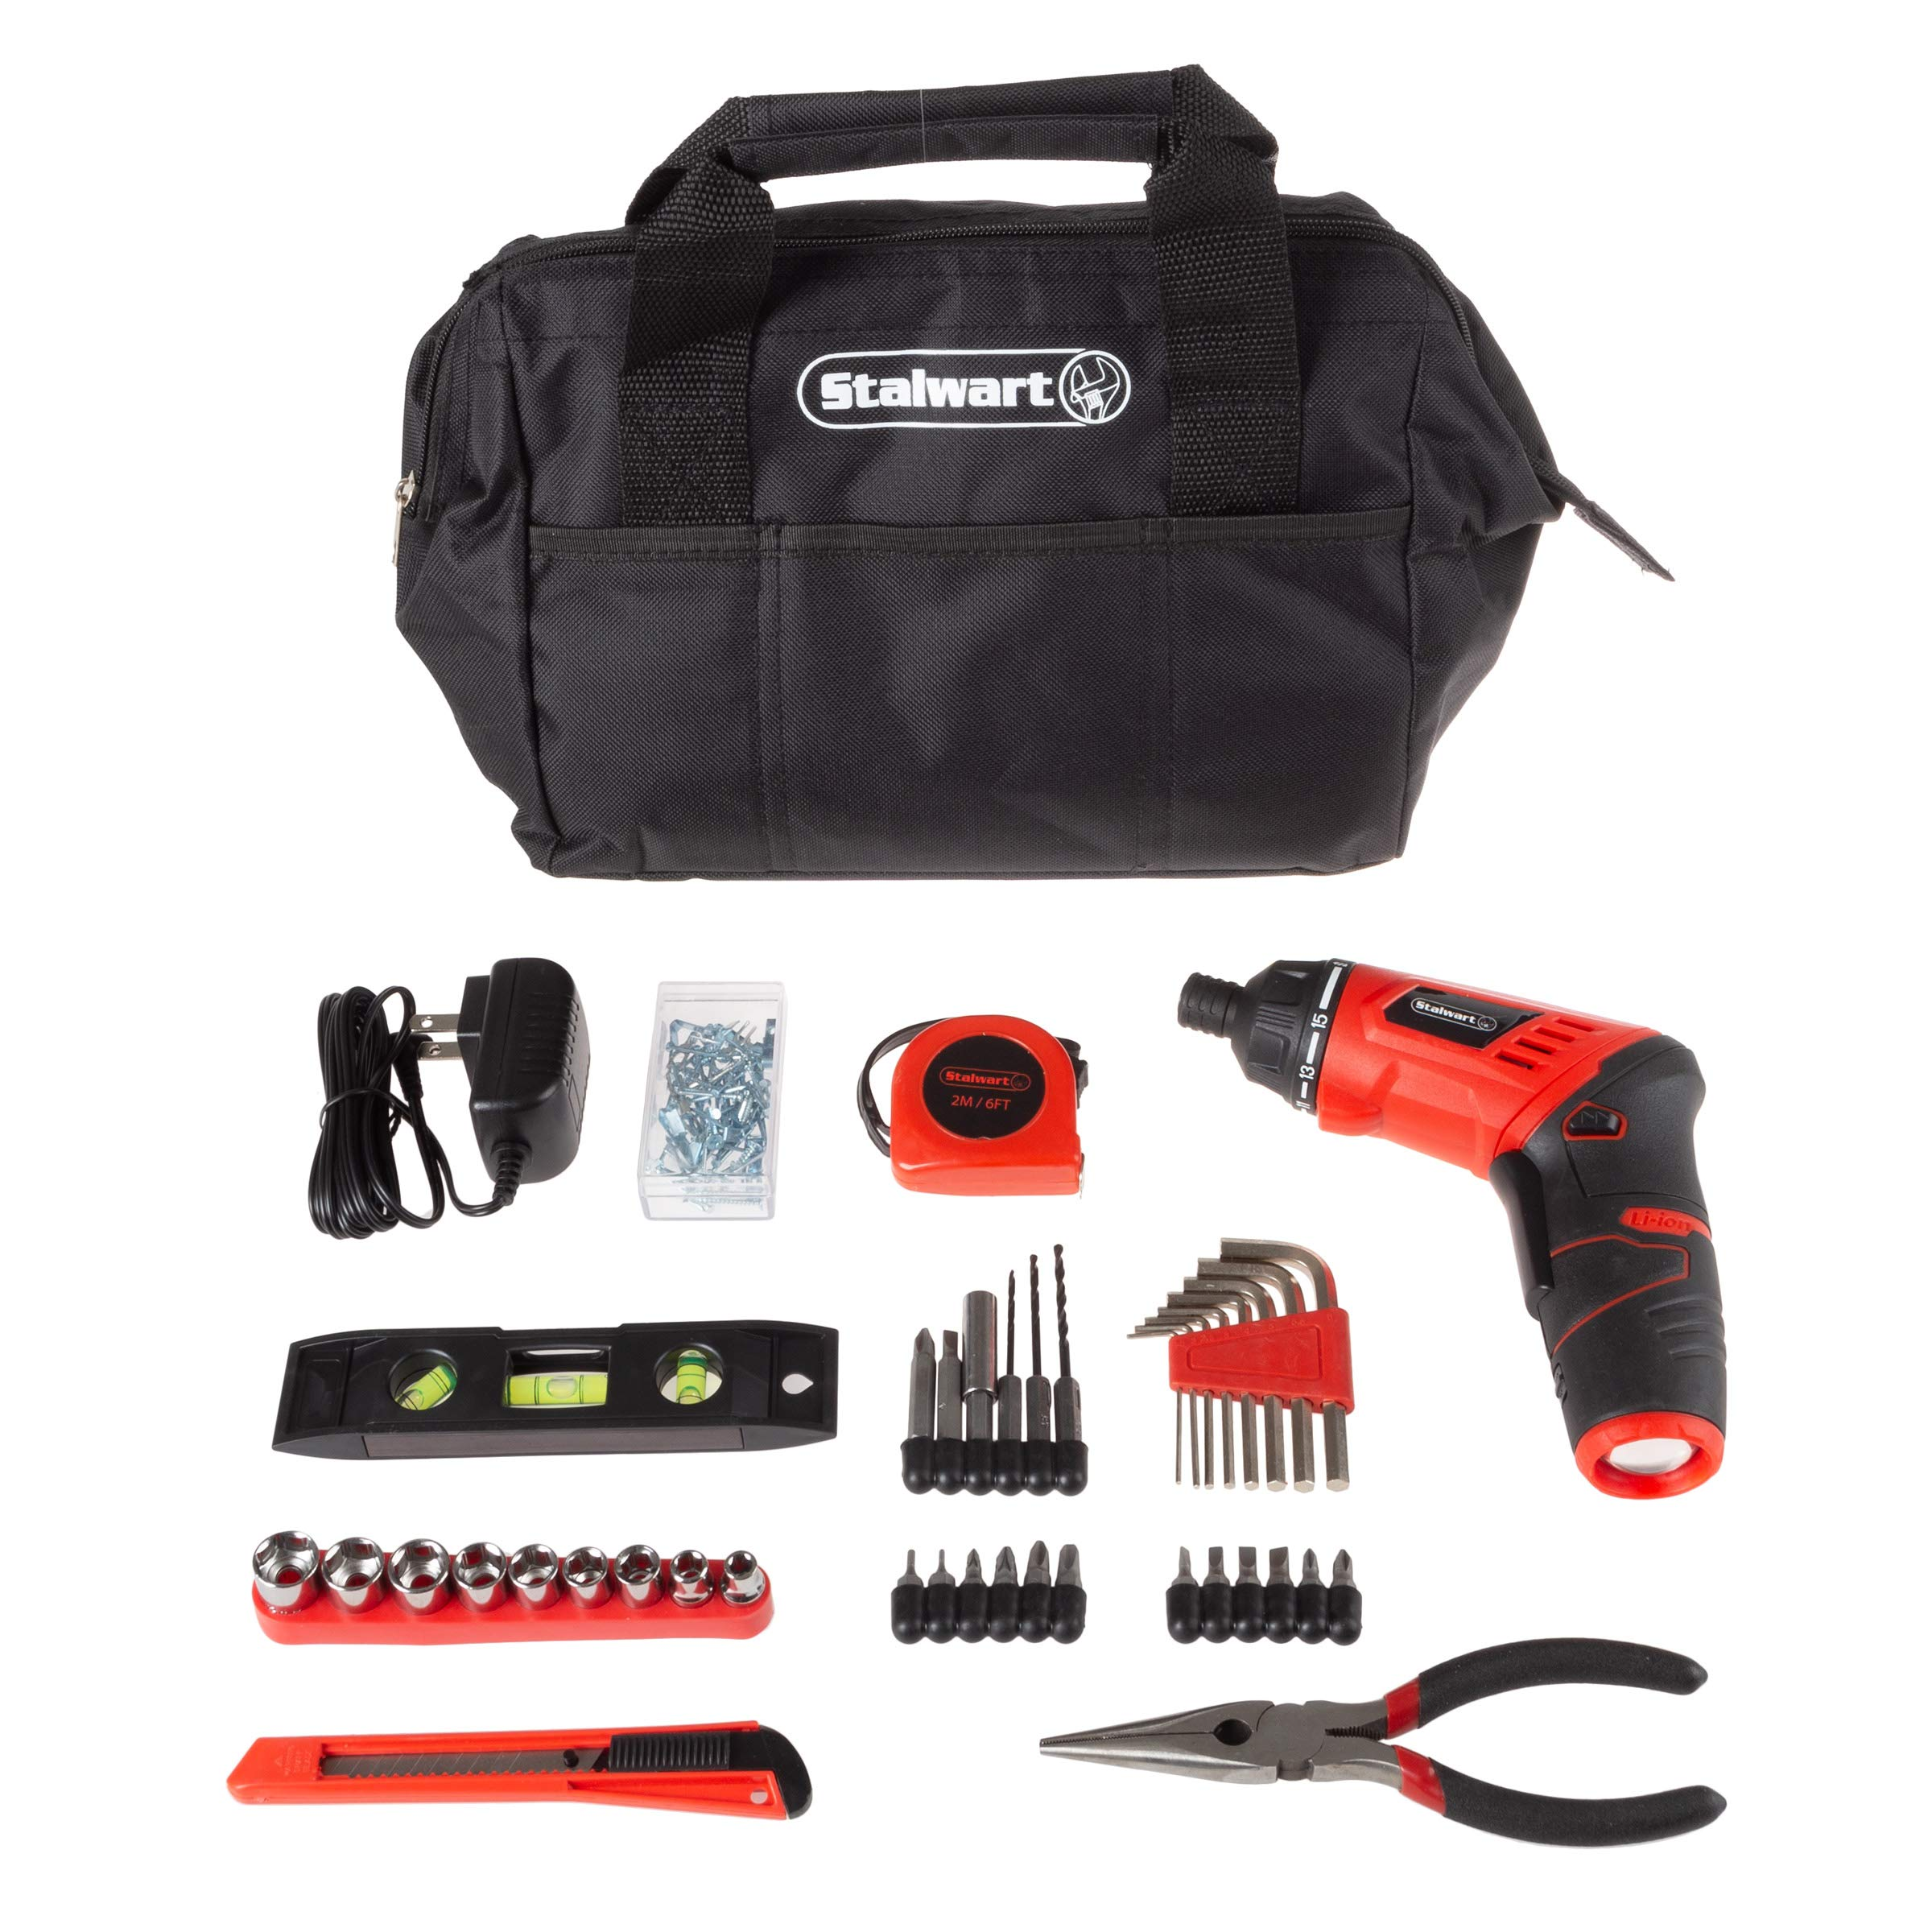 Stalwart 3.6V Cordless Drill with Rechargeable Lithium Ion Battery & 121Piece Accessory Set - Portable Power Tool with Bits, Drivers & Bag